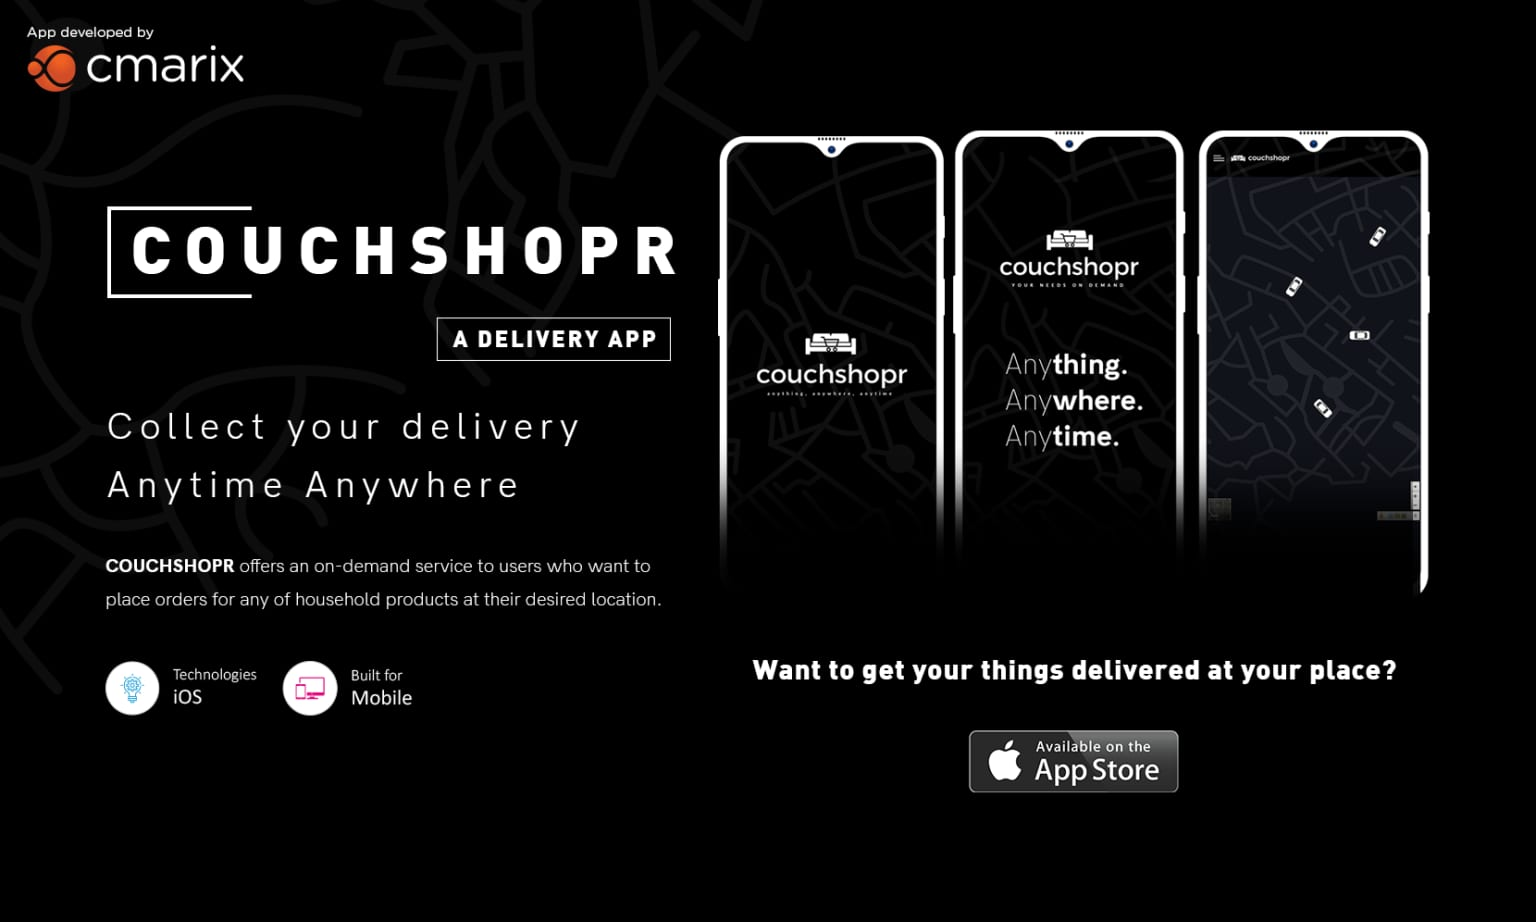 CouchShopr | An On-Demand Household Products iPhone Delivery App